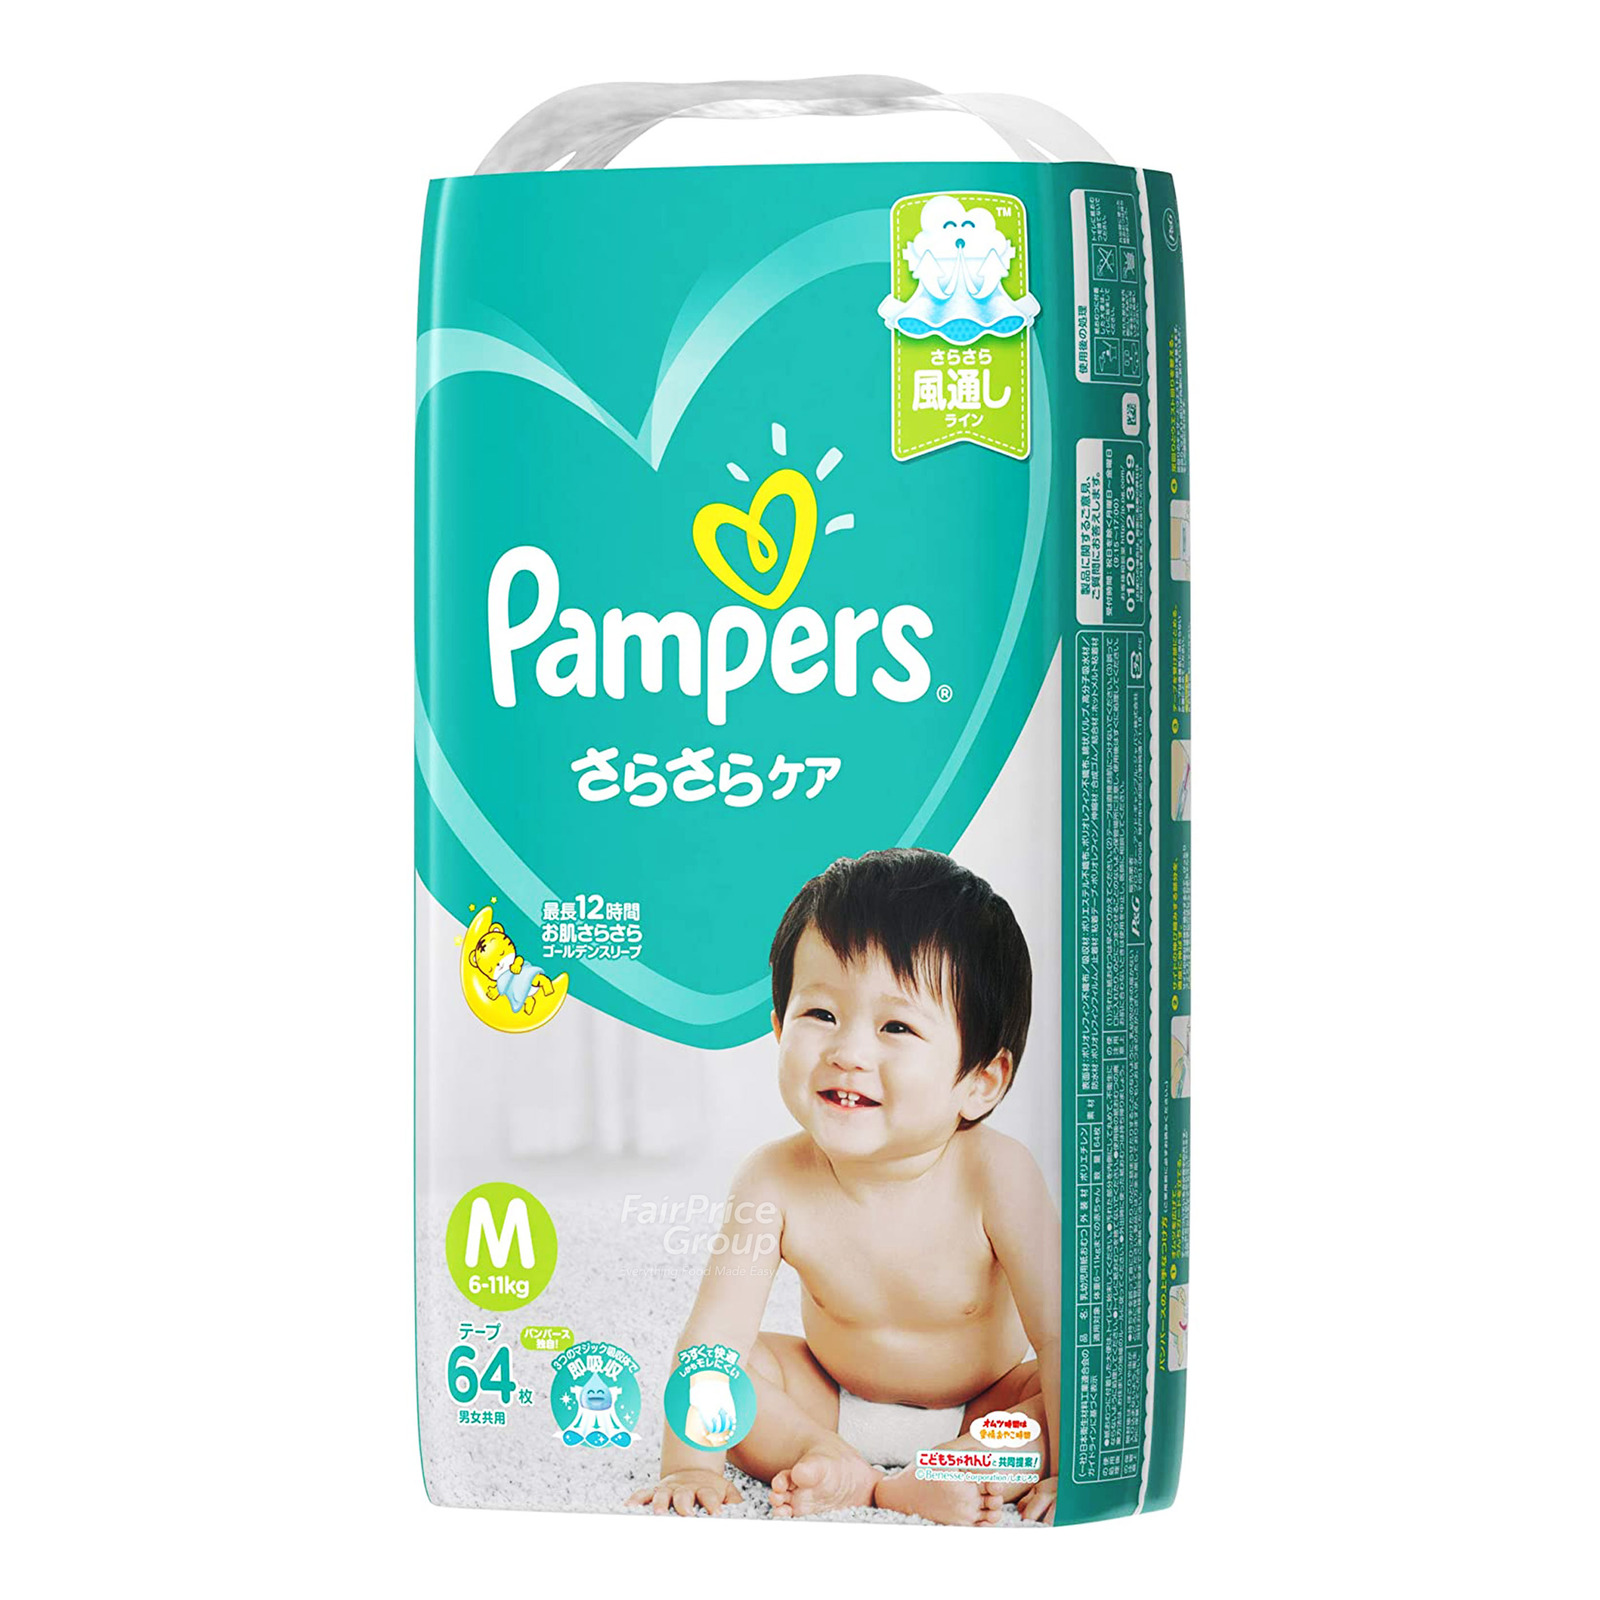 PAMPERS Baby Dry Tapes Diapers M 64s 6-11kg